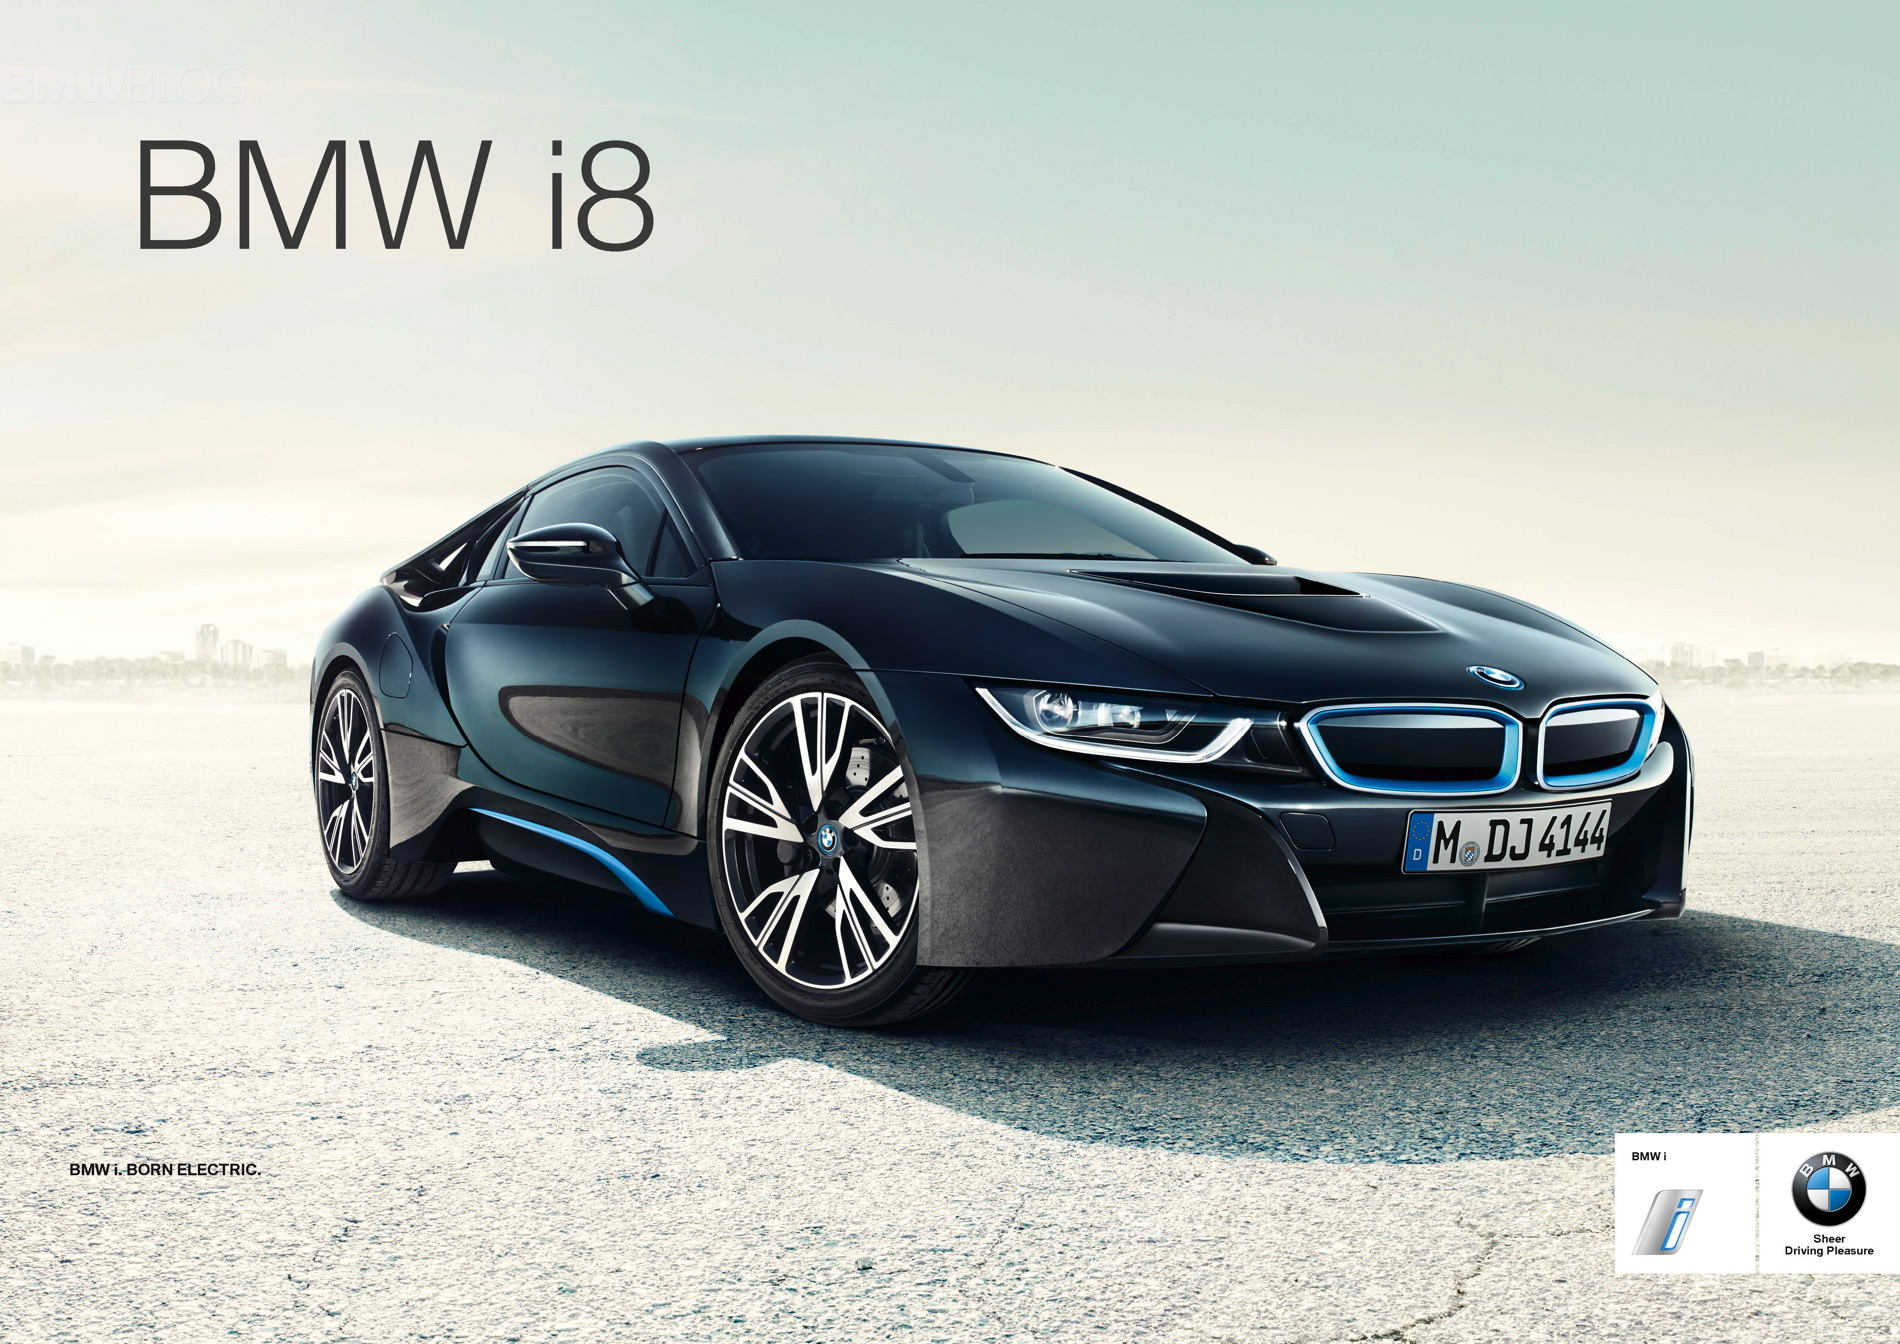 Global launch campaign for BMW i8 01